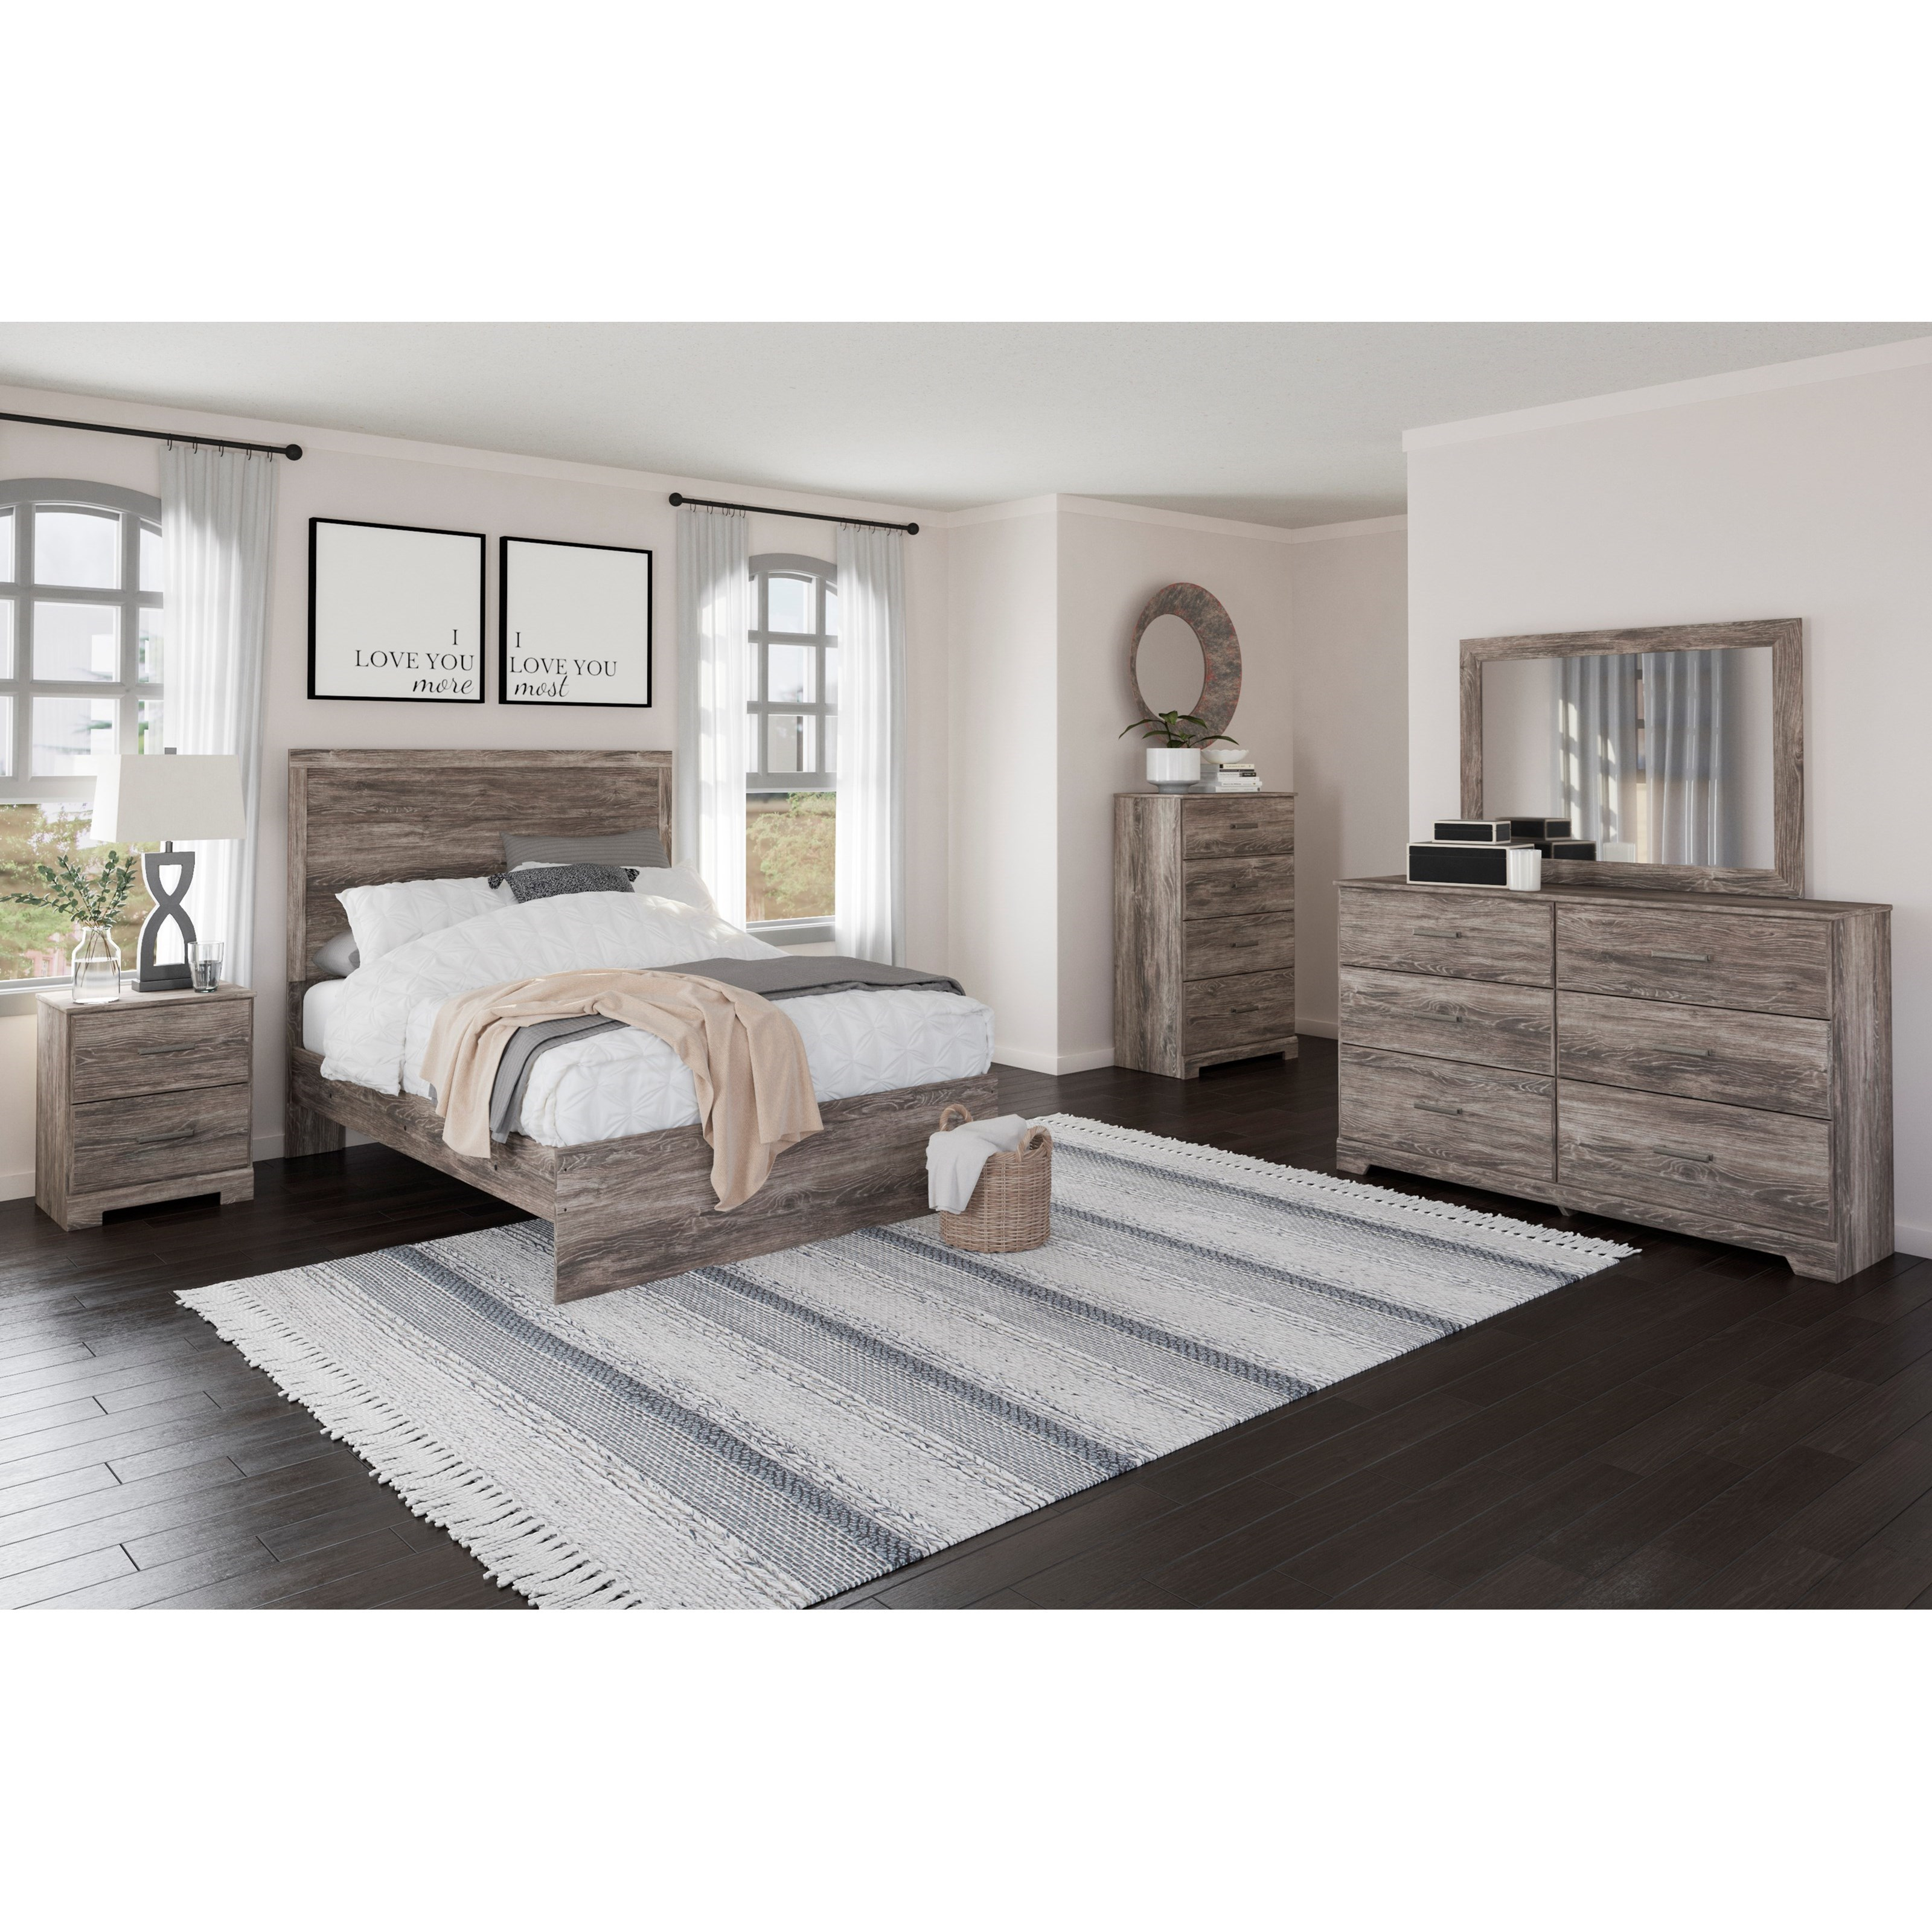 Ralinski Full Bedroom Group by Signature Design by Ashley at Rife's Home Furniture